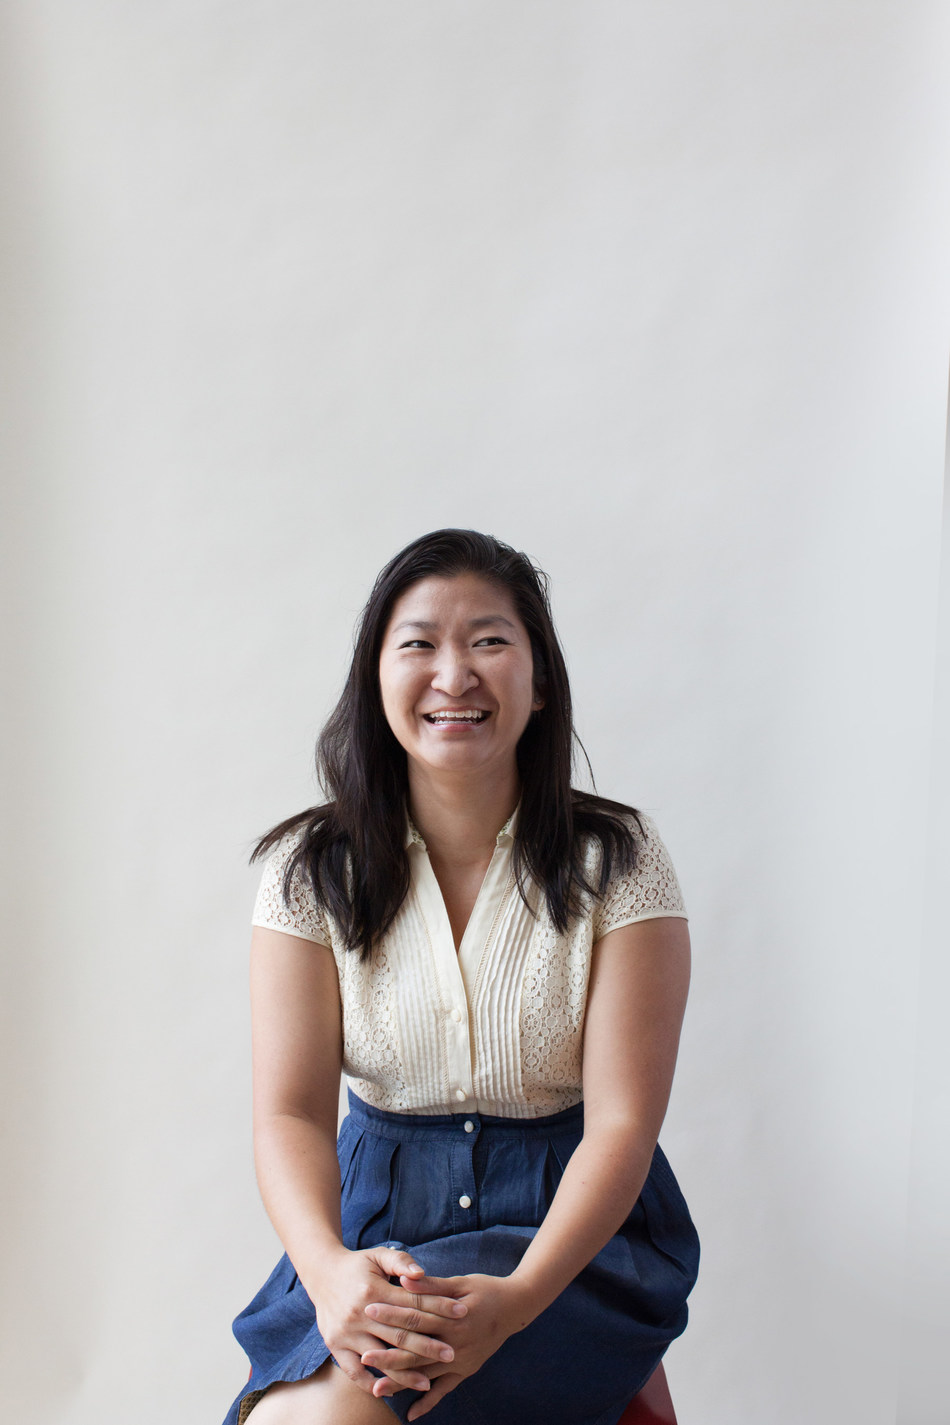 Digital Agency IMM Promotes Gina Lee to Chief Operating Officer